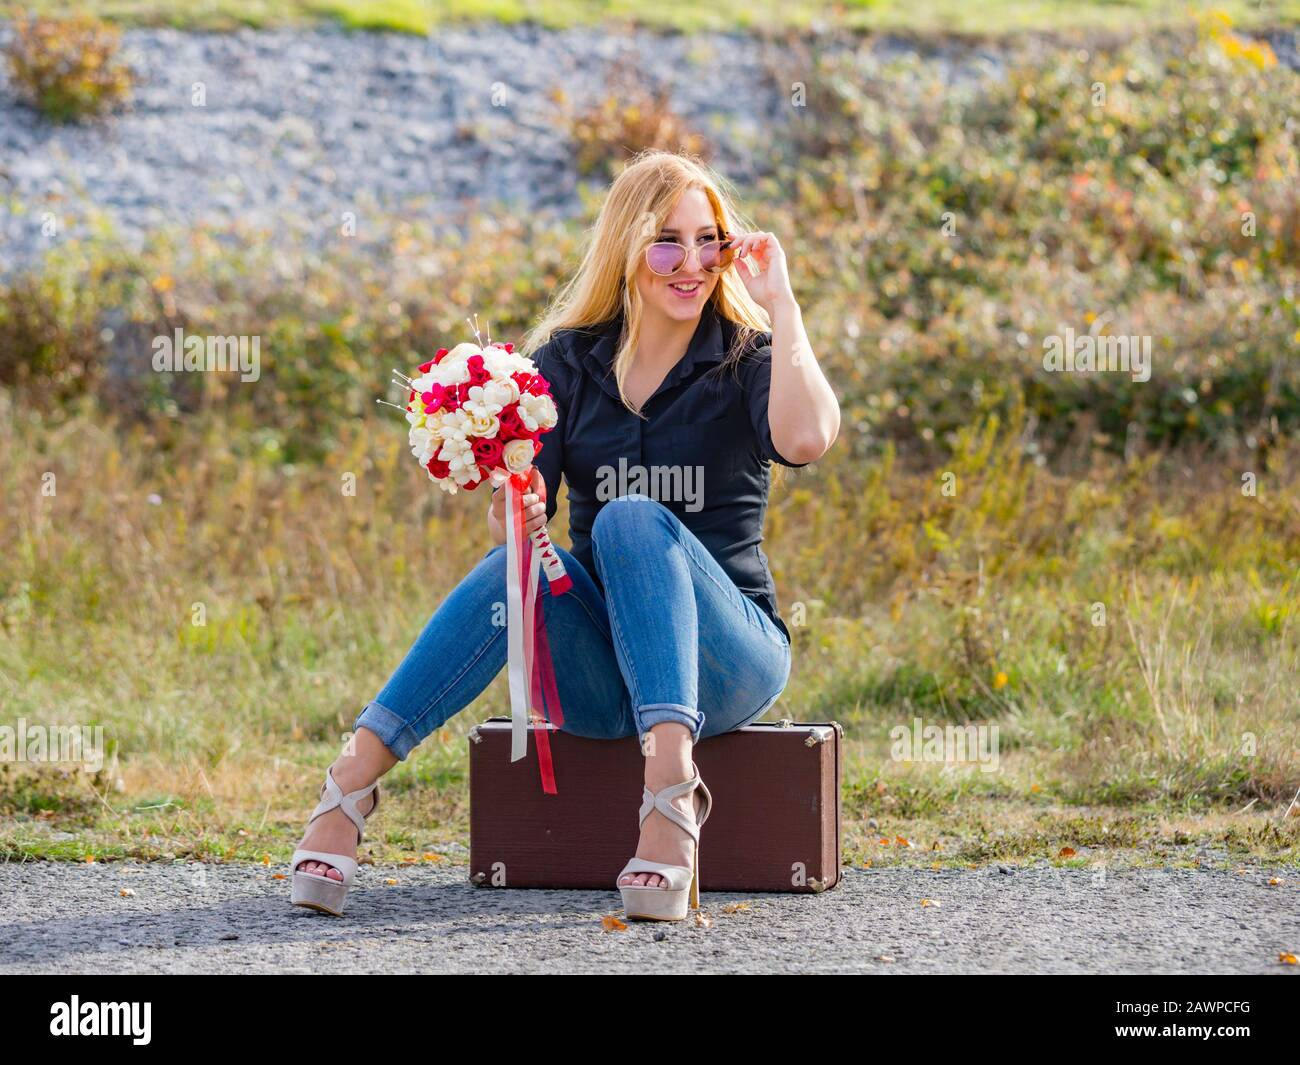 Teen girl sitting on boxy baggage case denim pants legs heels hand holding flowery bouquet smiling positive feeling expected expecting expect looking Stock Photo